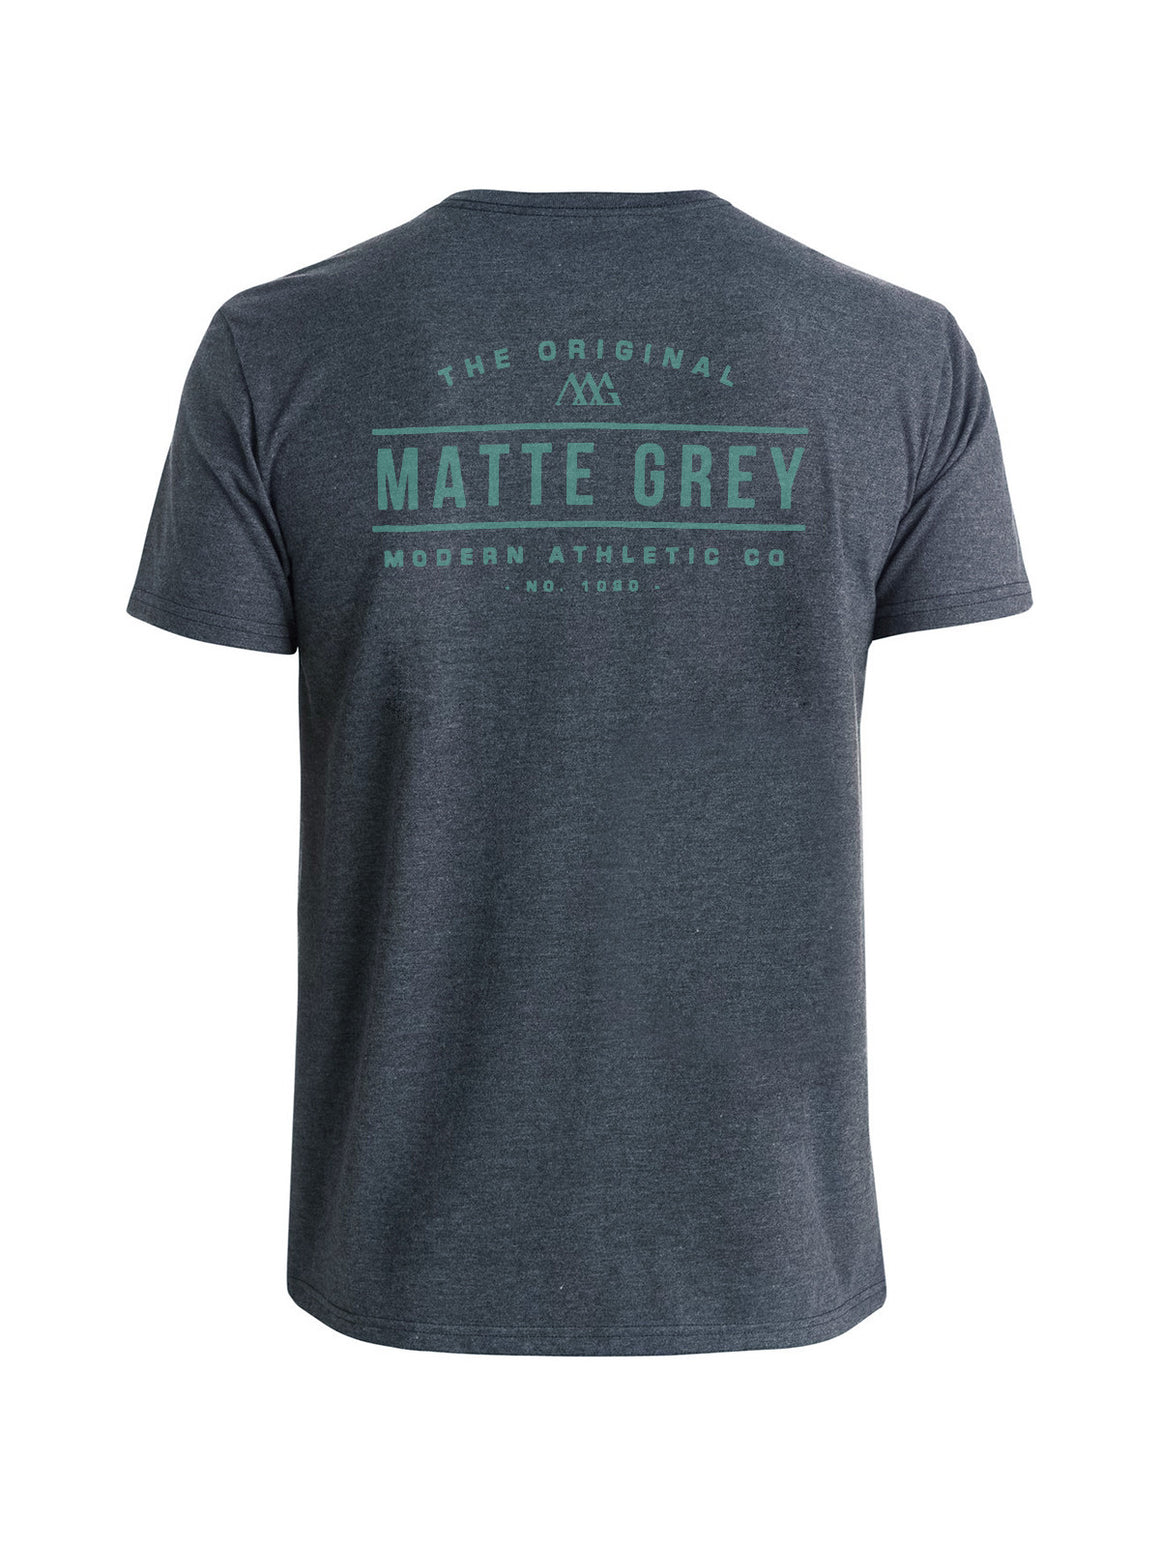 Marquee Tee Shirt - Graphite Heather (Sea Green)